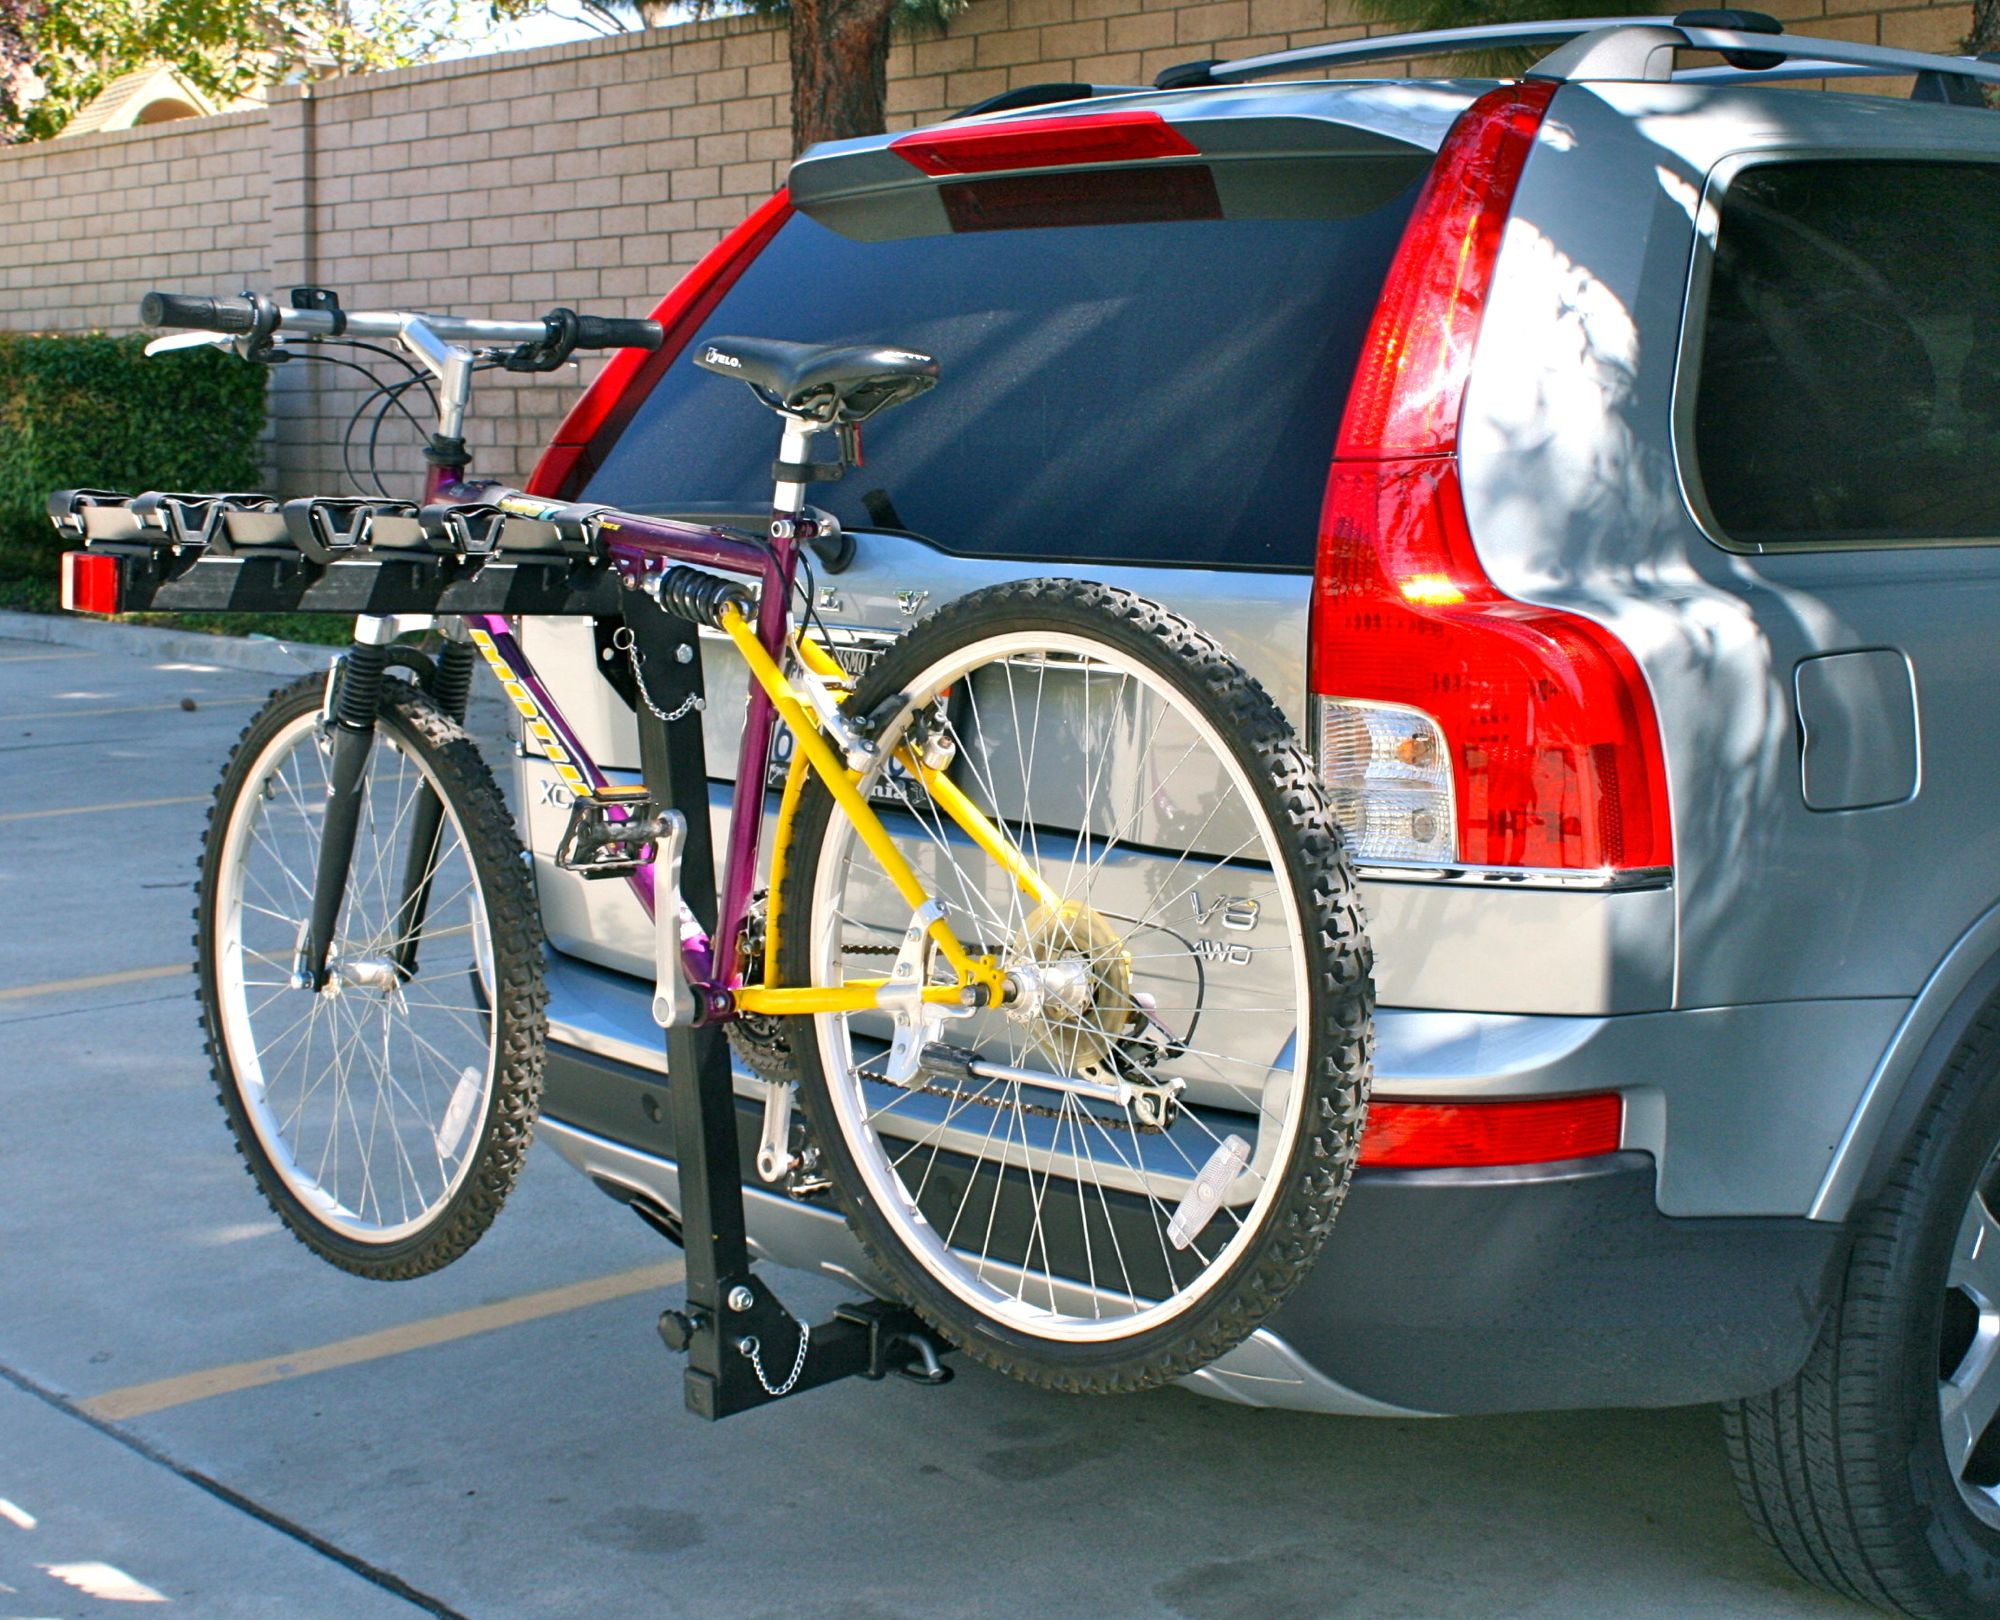 70210 4-Bike Rack Photo A.jpg